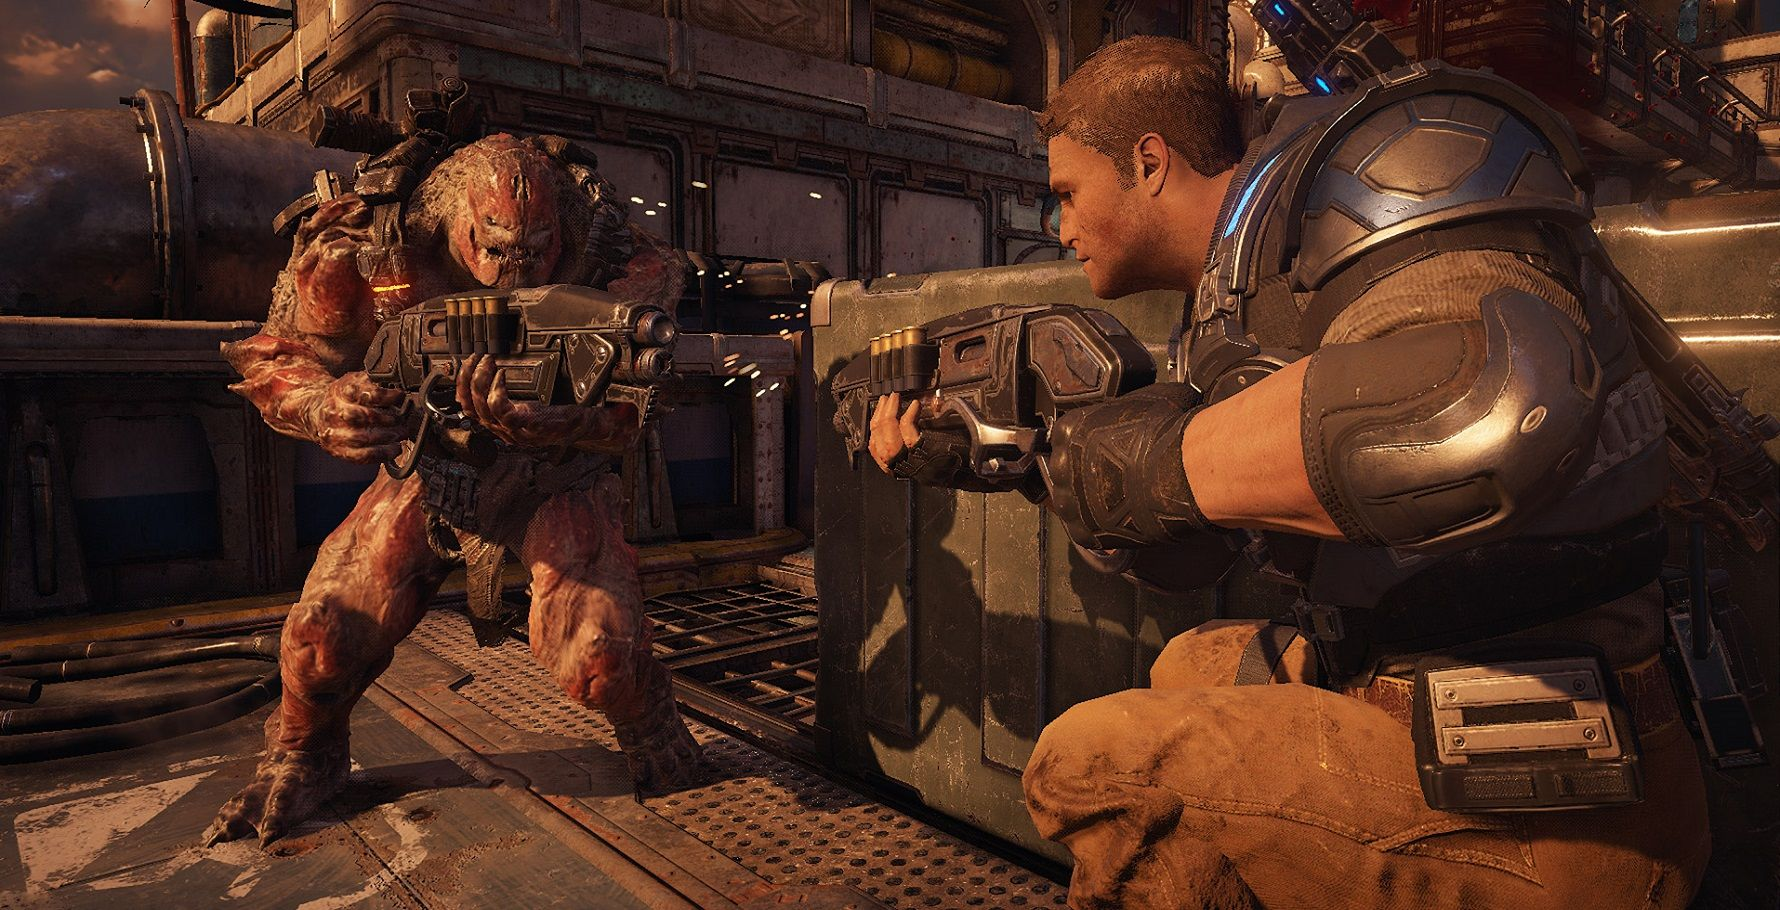 The 5 Best Weapons For Horde Mode In Gears 5 (& The 5 Worst)